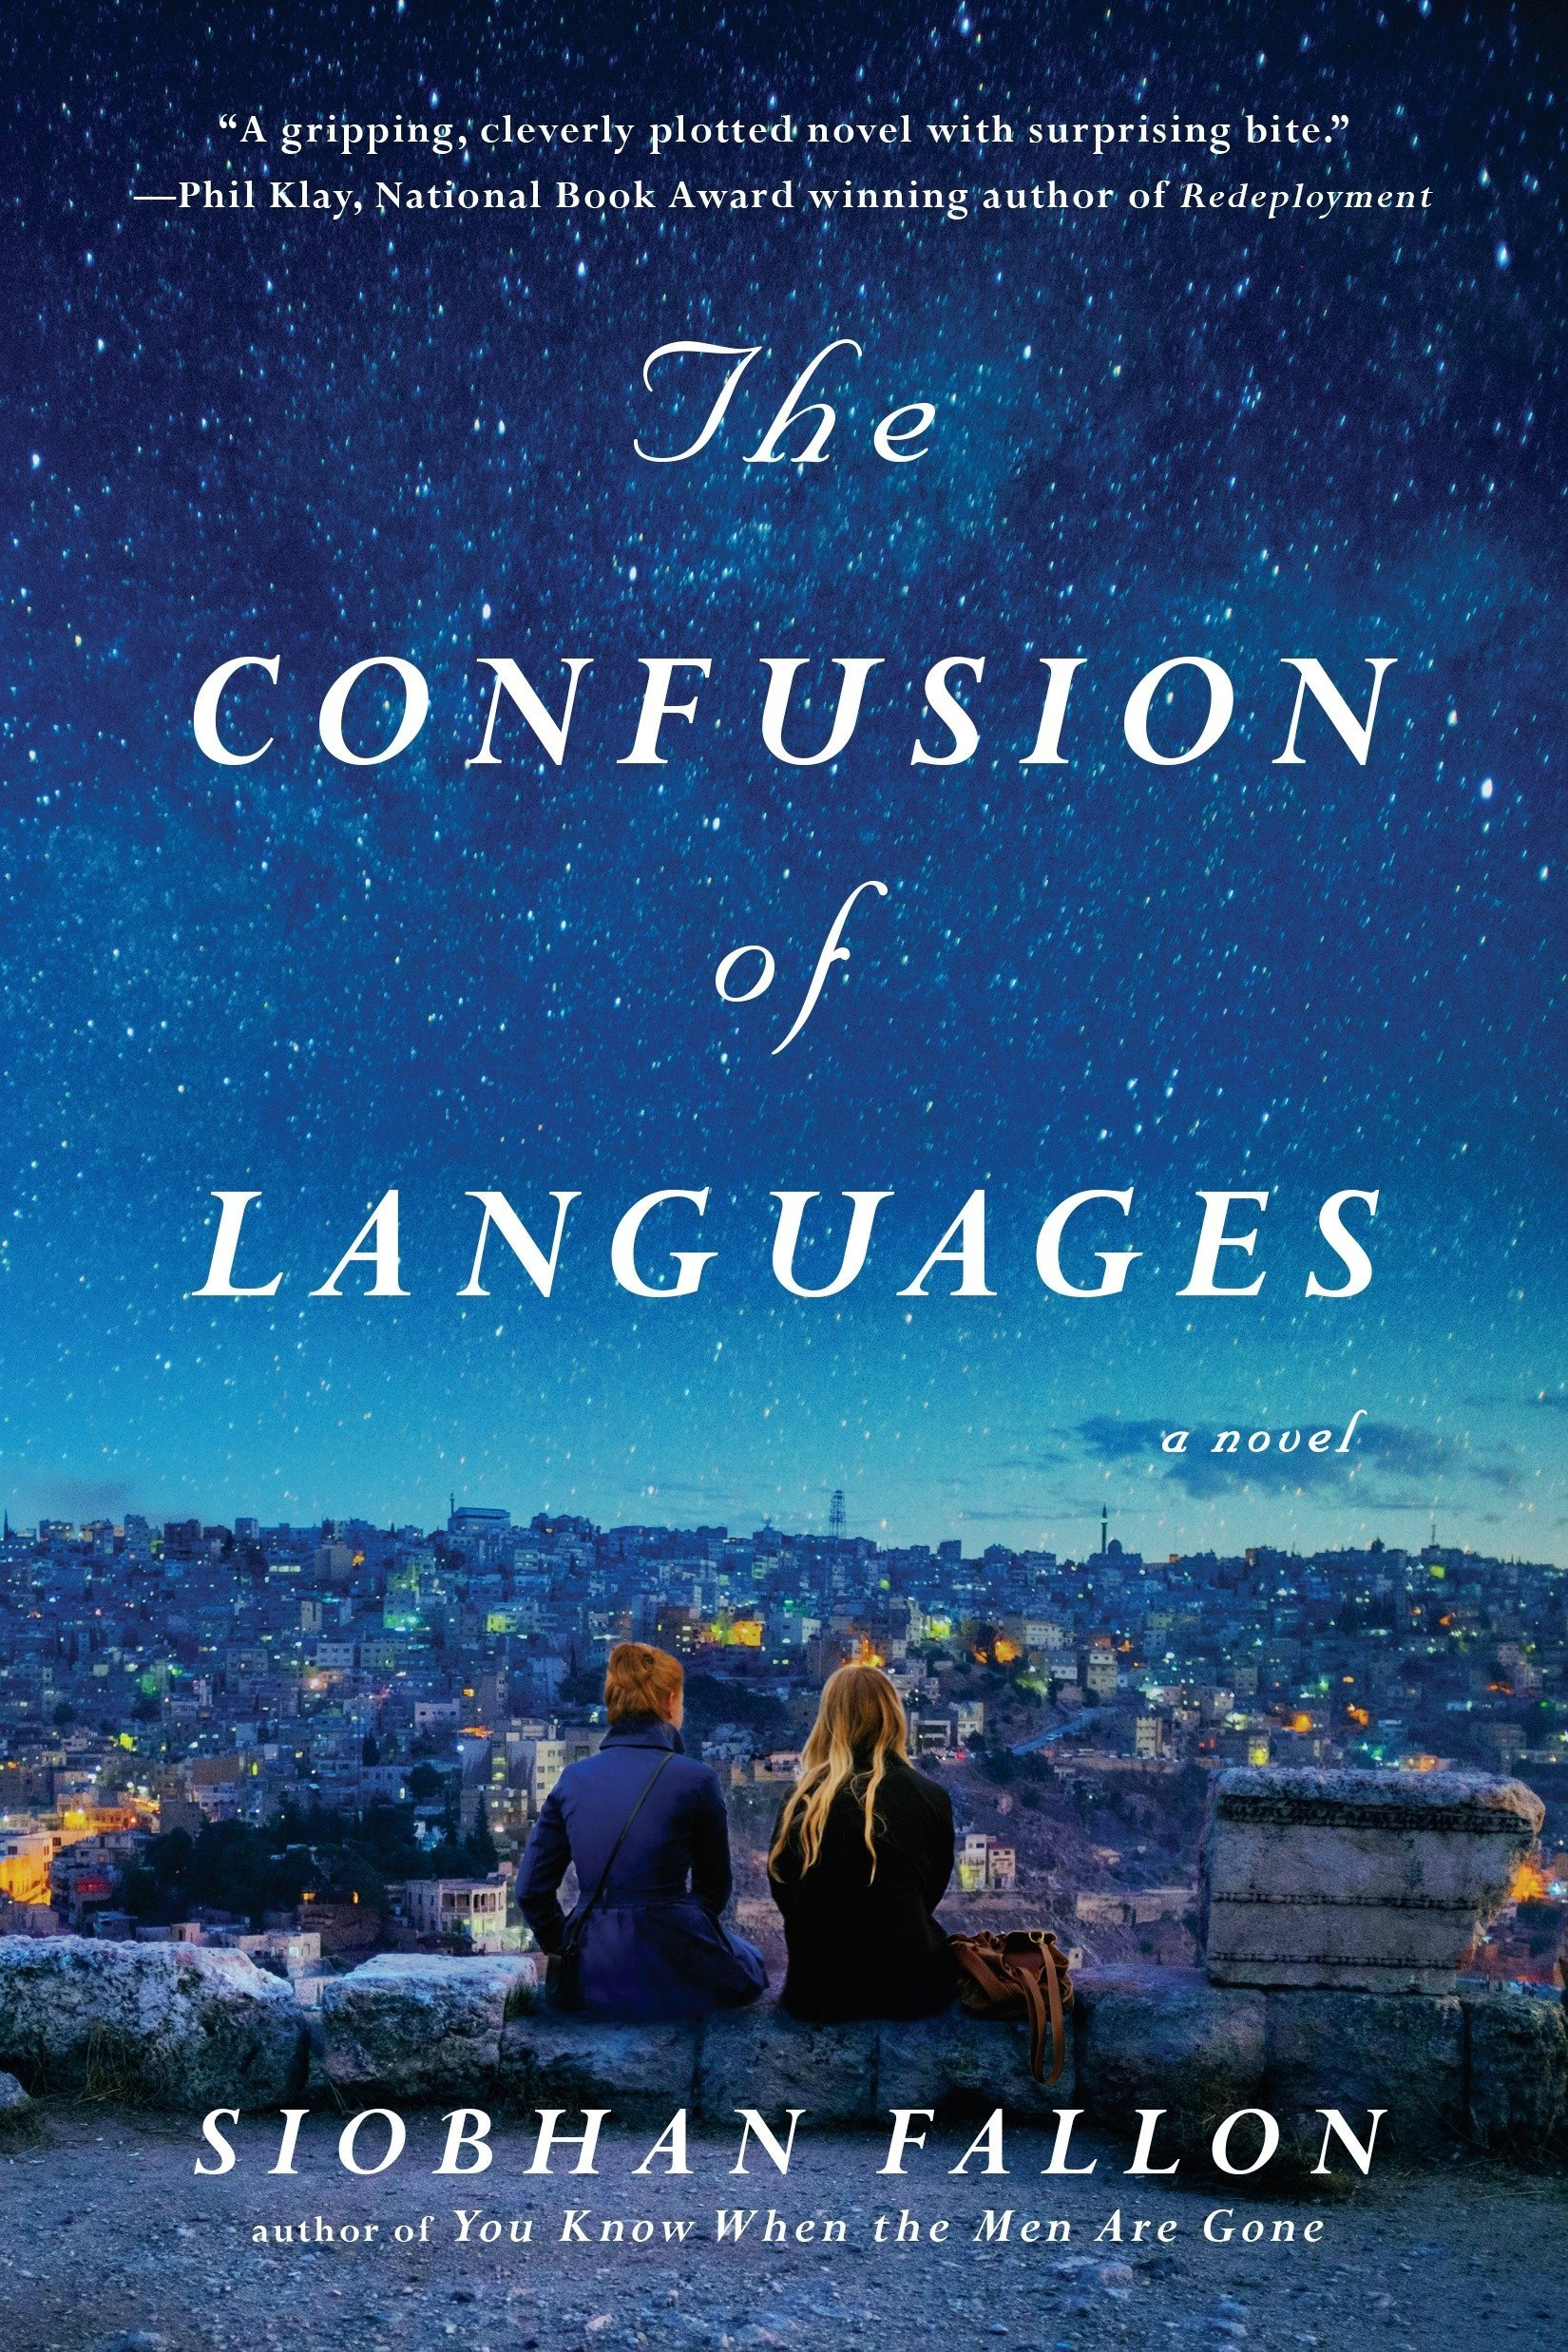 The Confusion of Languages by G.P. Putnam's Sons